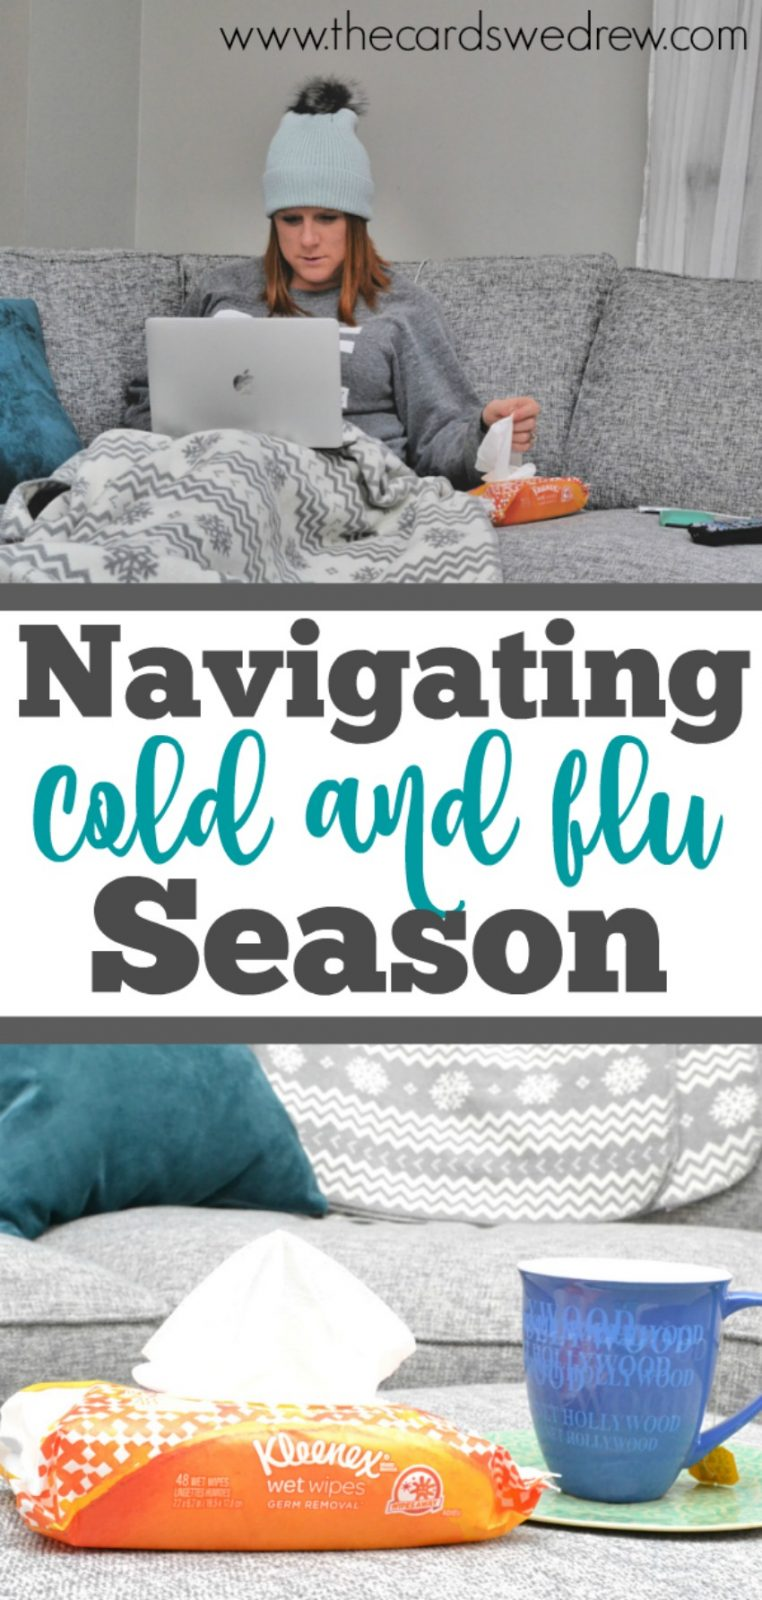 Navigating Cold and Flu Season